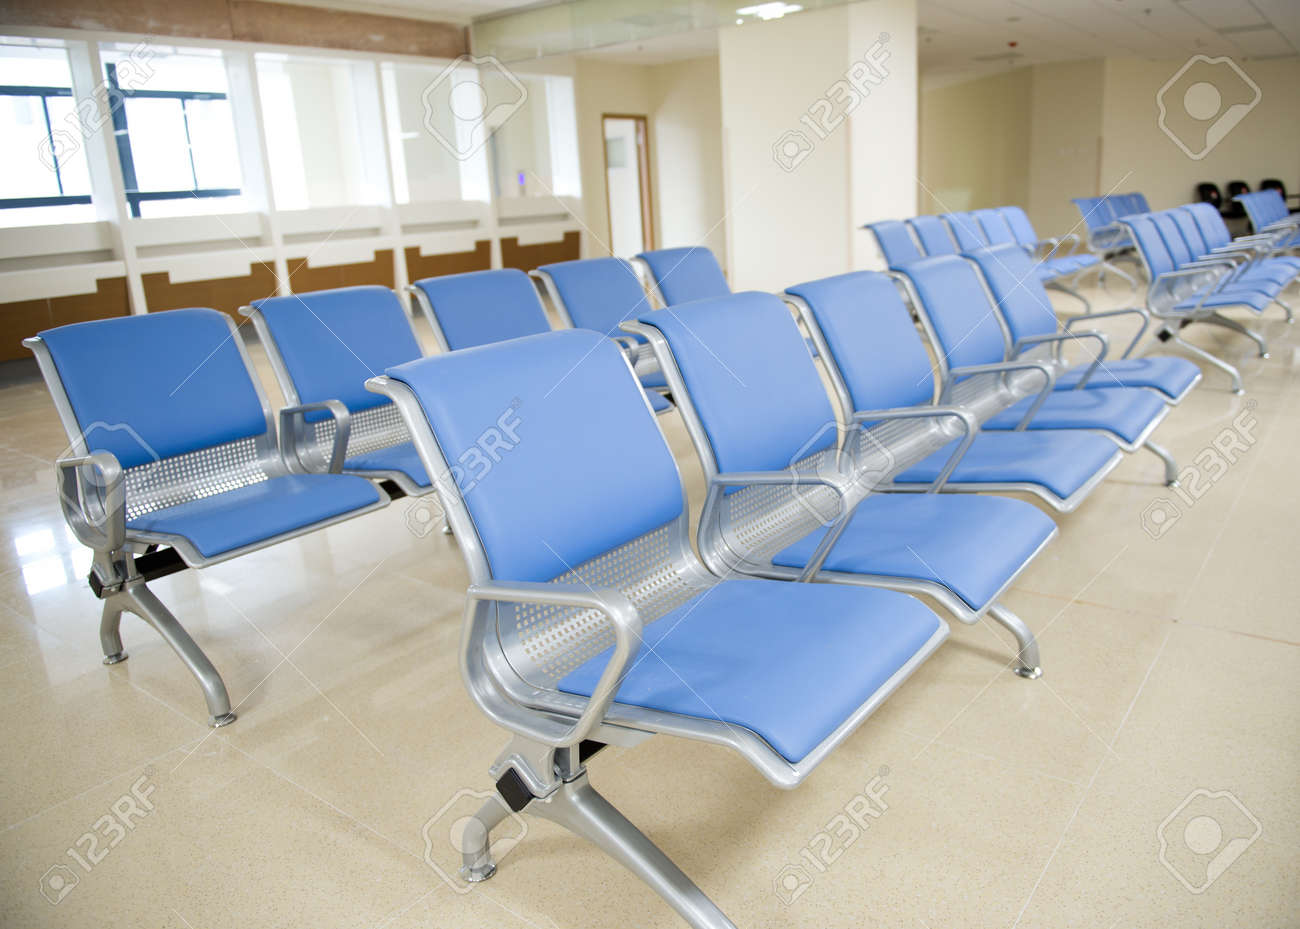 Empty chair in room - Hospital Waiting Room With Empty Chairs Stock Photo 17828500